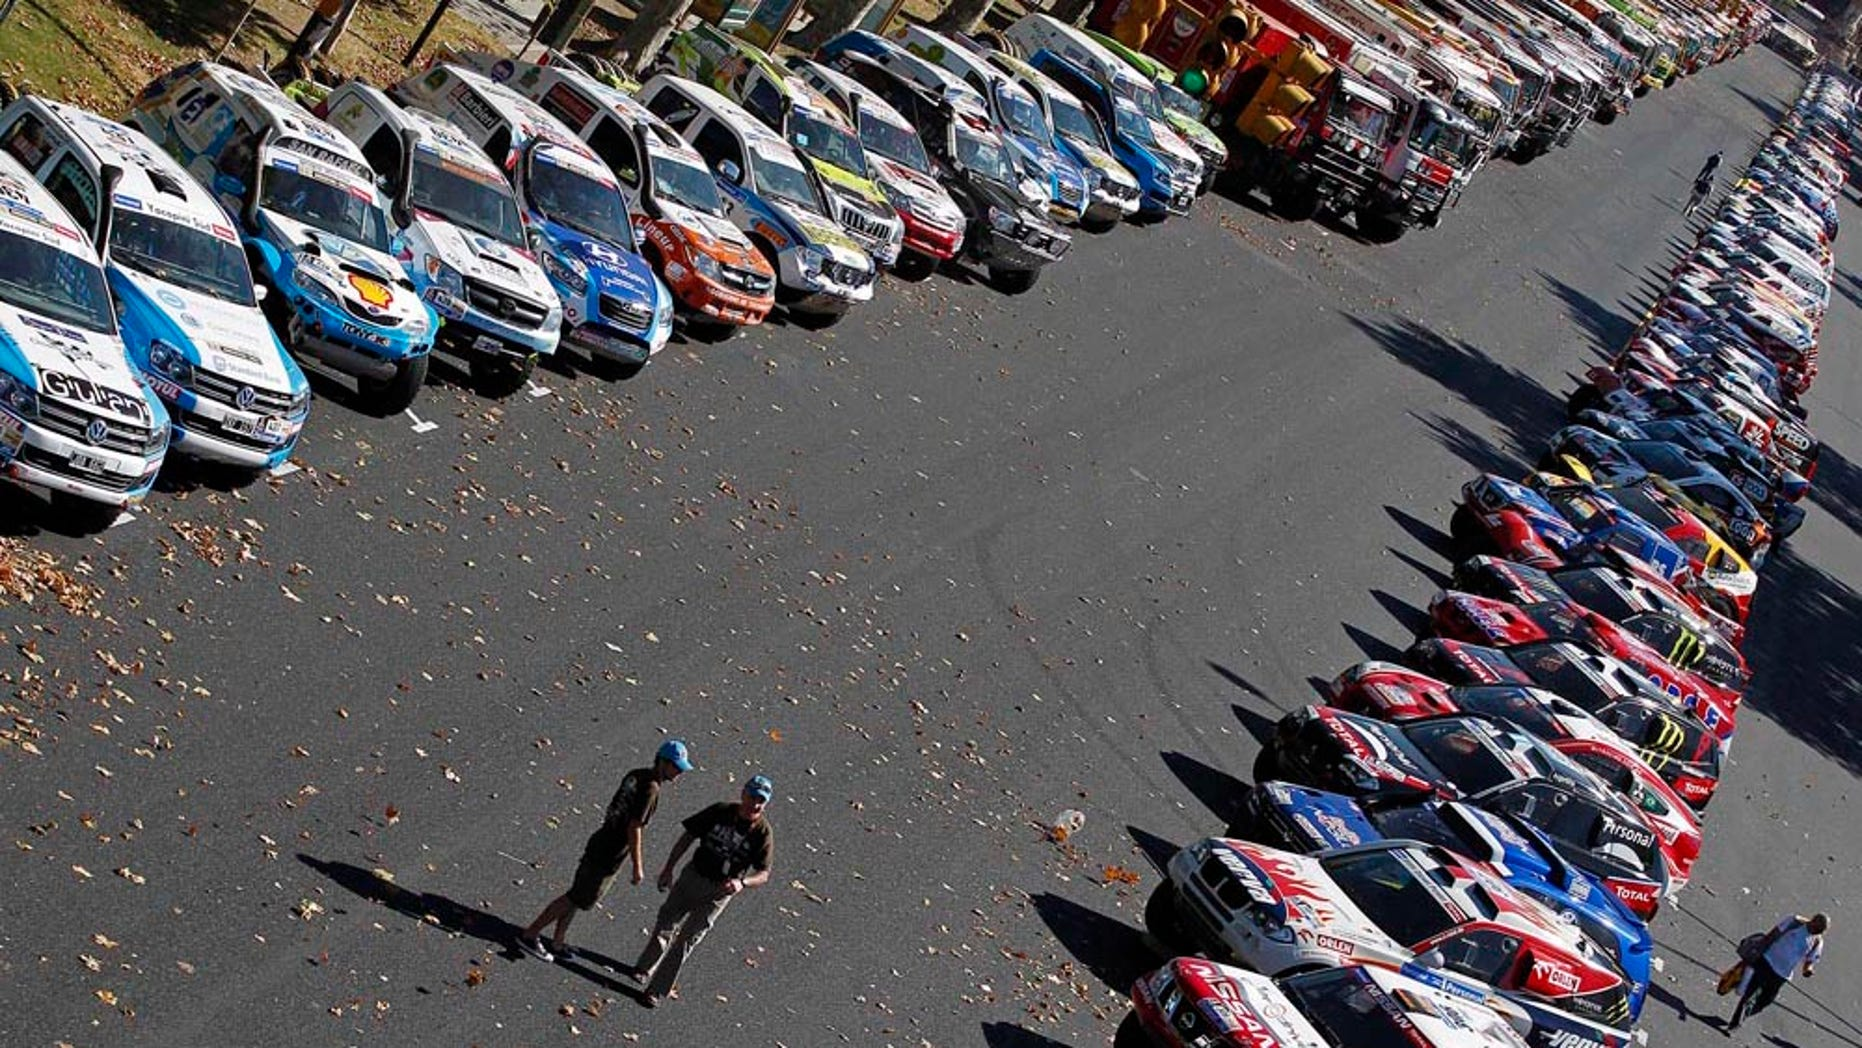 Vehicles are seen parked prior to the 2011 Argentina-Chile Dakar Rally in Buenos Aires, Argentina, Friday, Dec. 31, 2010. The rally will start on Jan. 1.  (AP Photo/Francois Flamand, Pool)